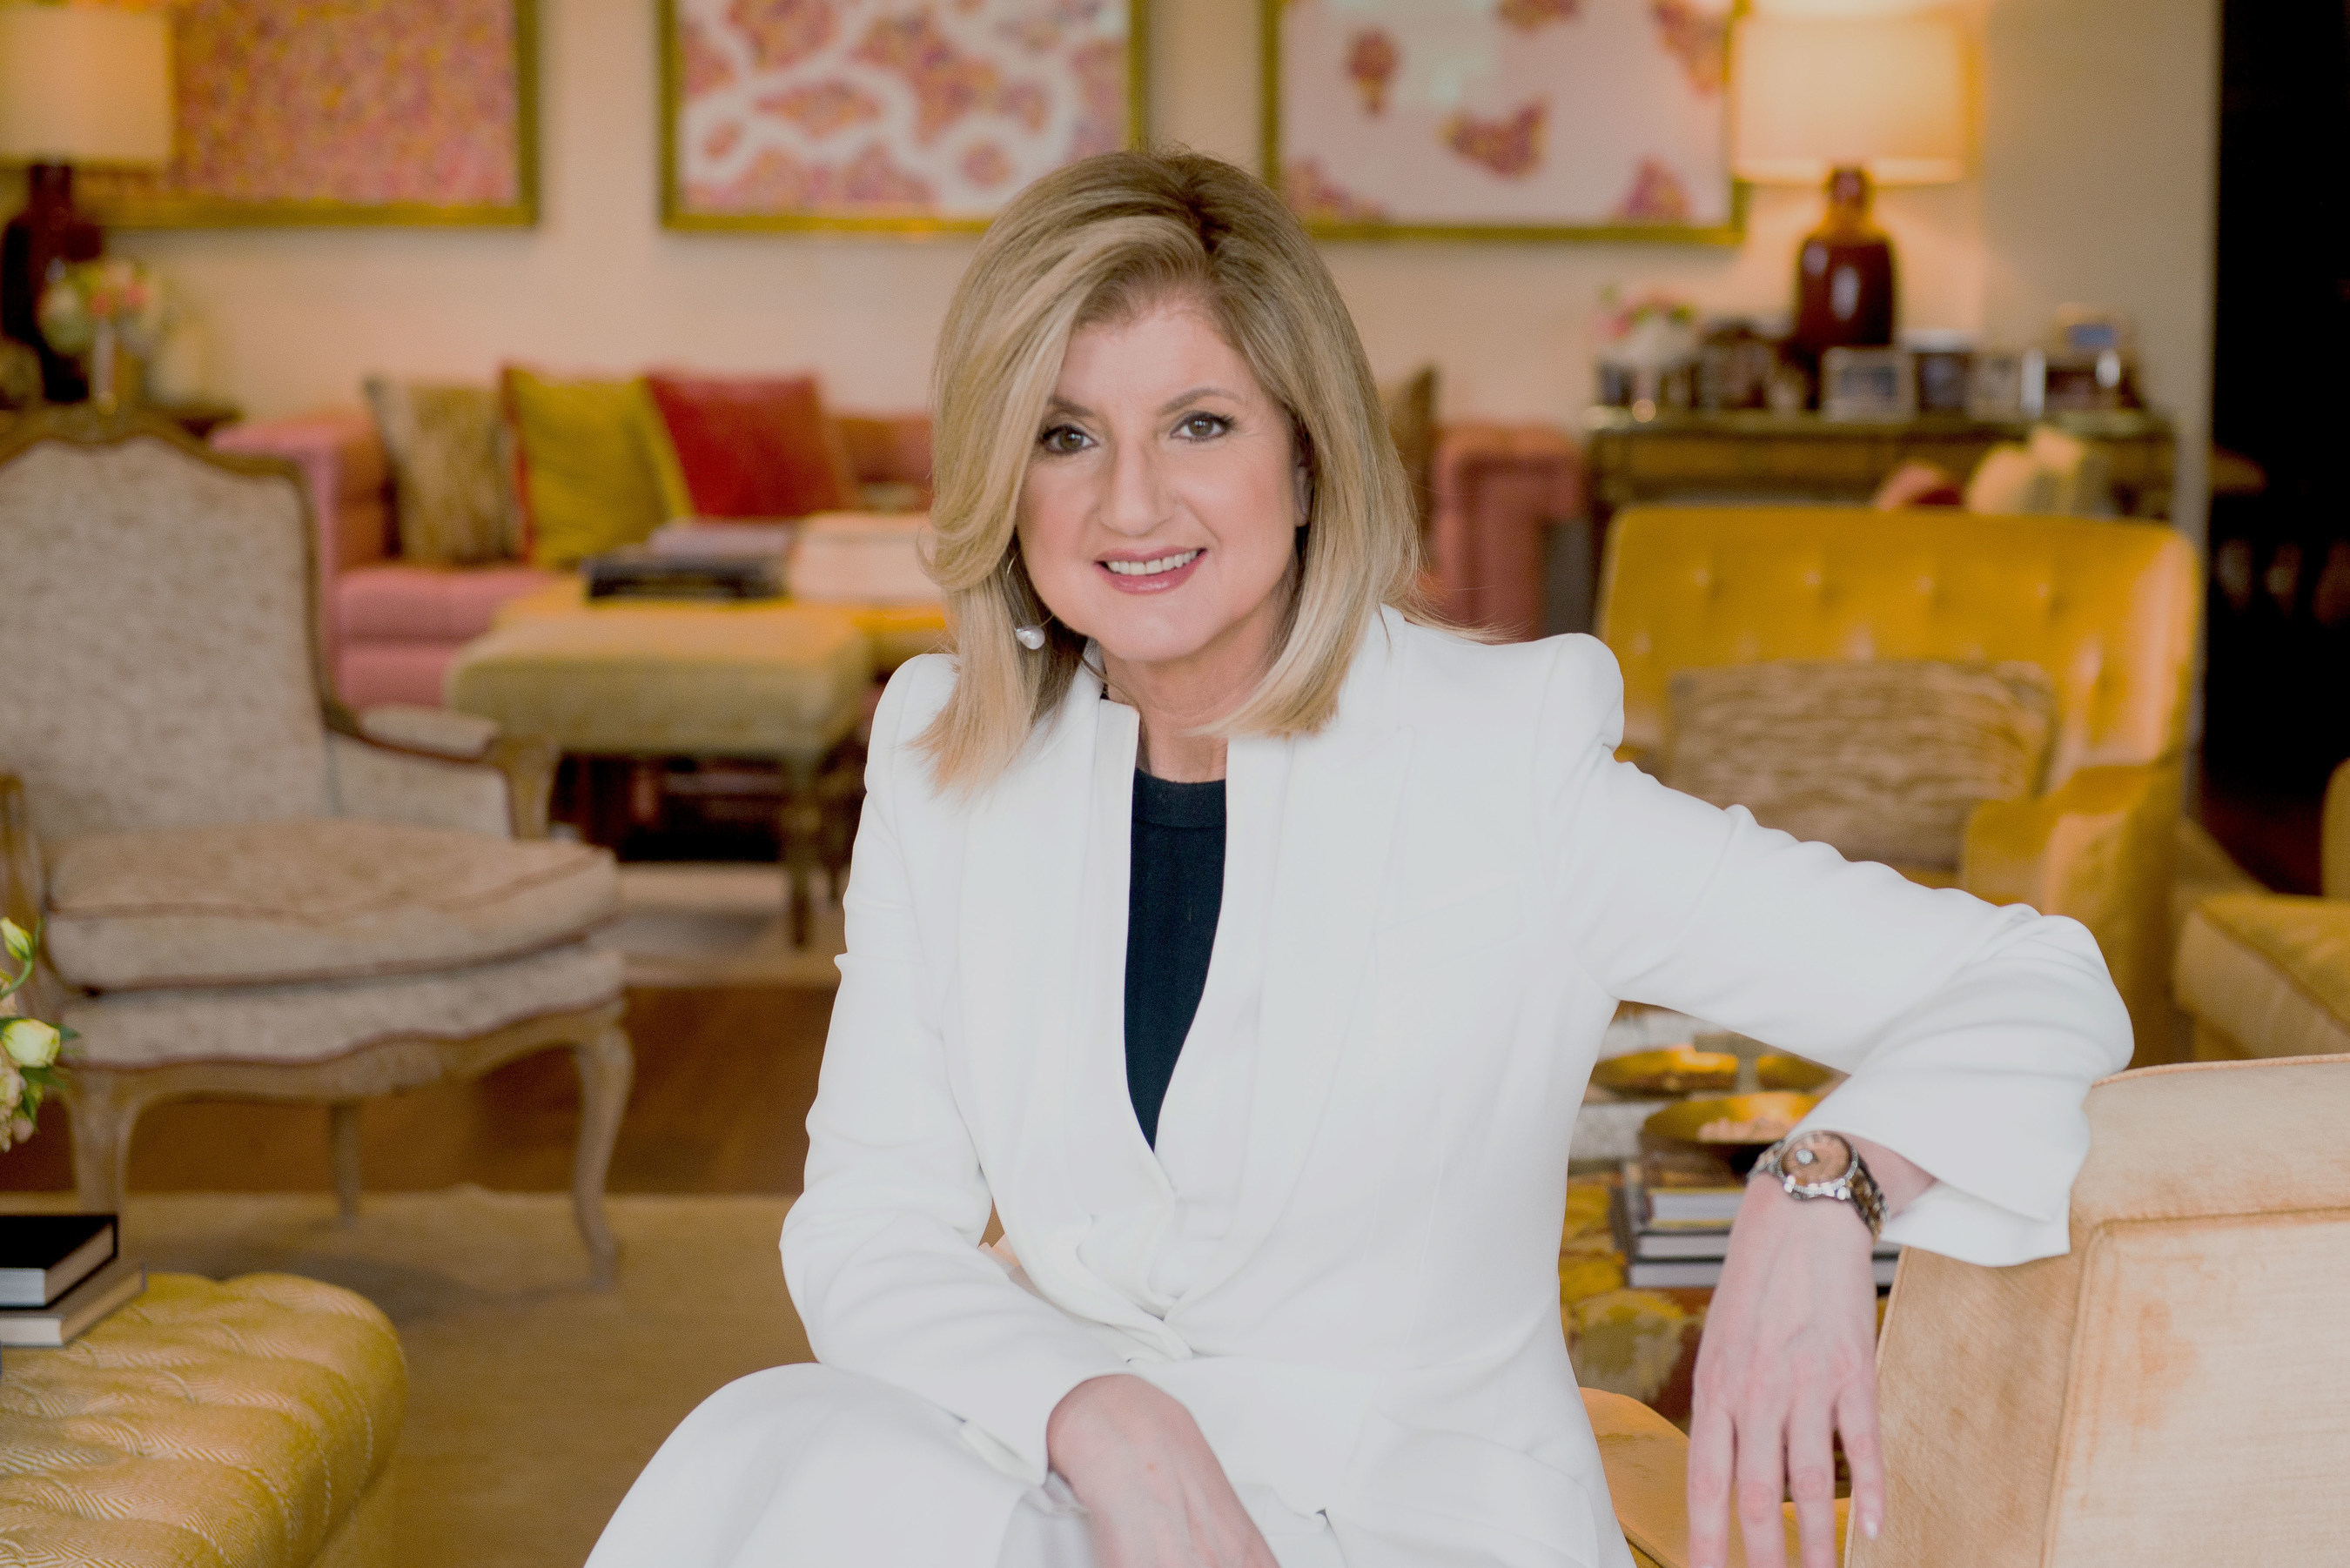 Watch Arianna Huffington bedtime ritual experiment video